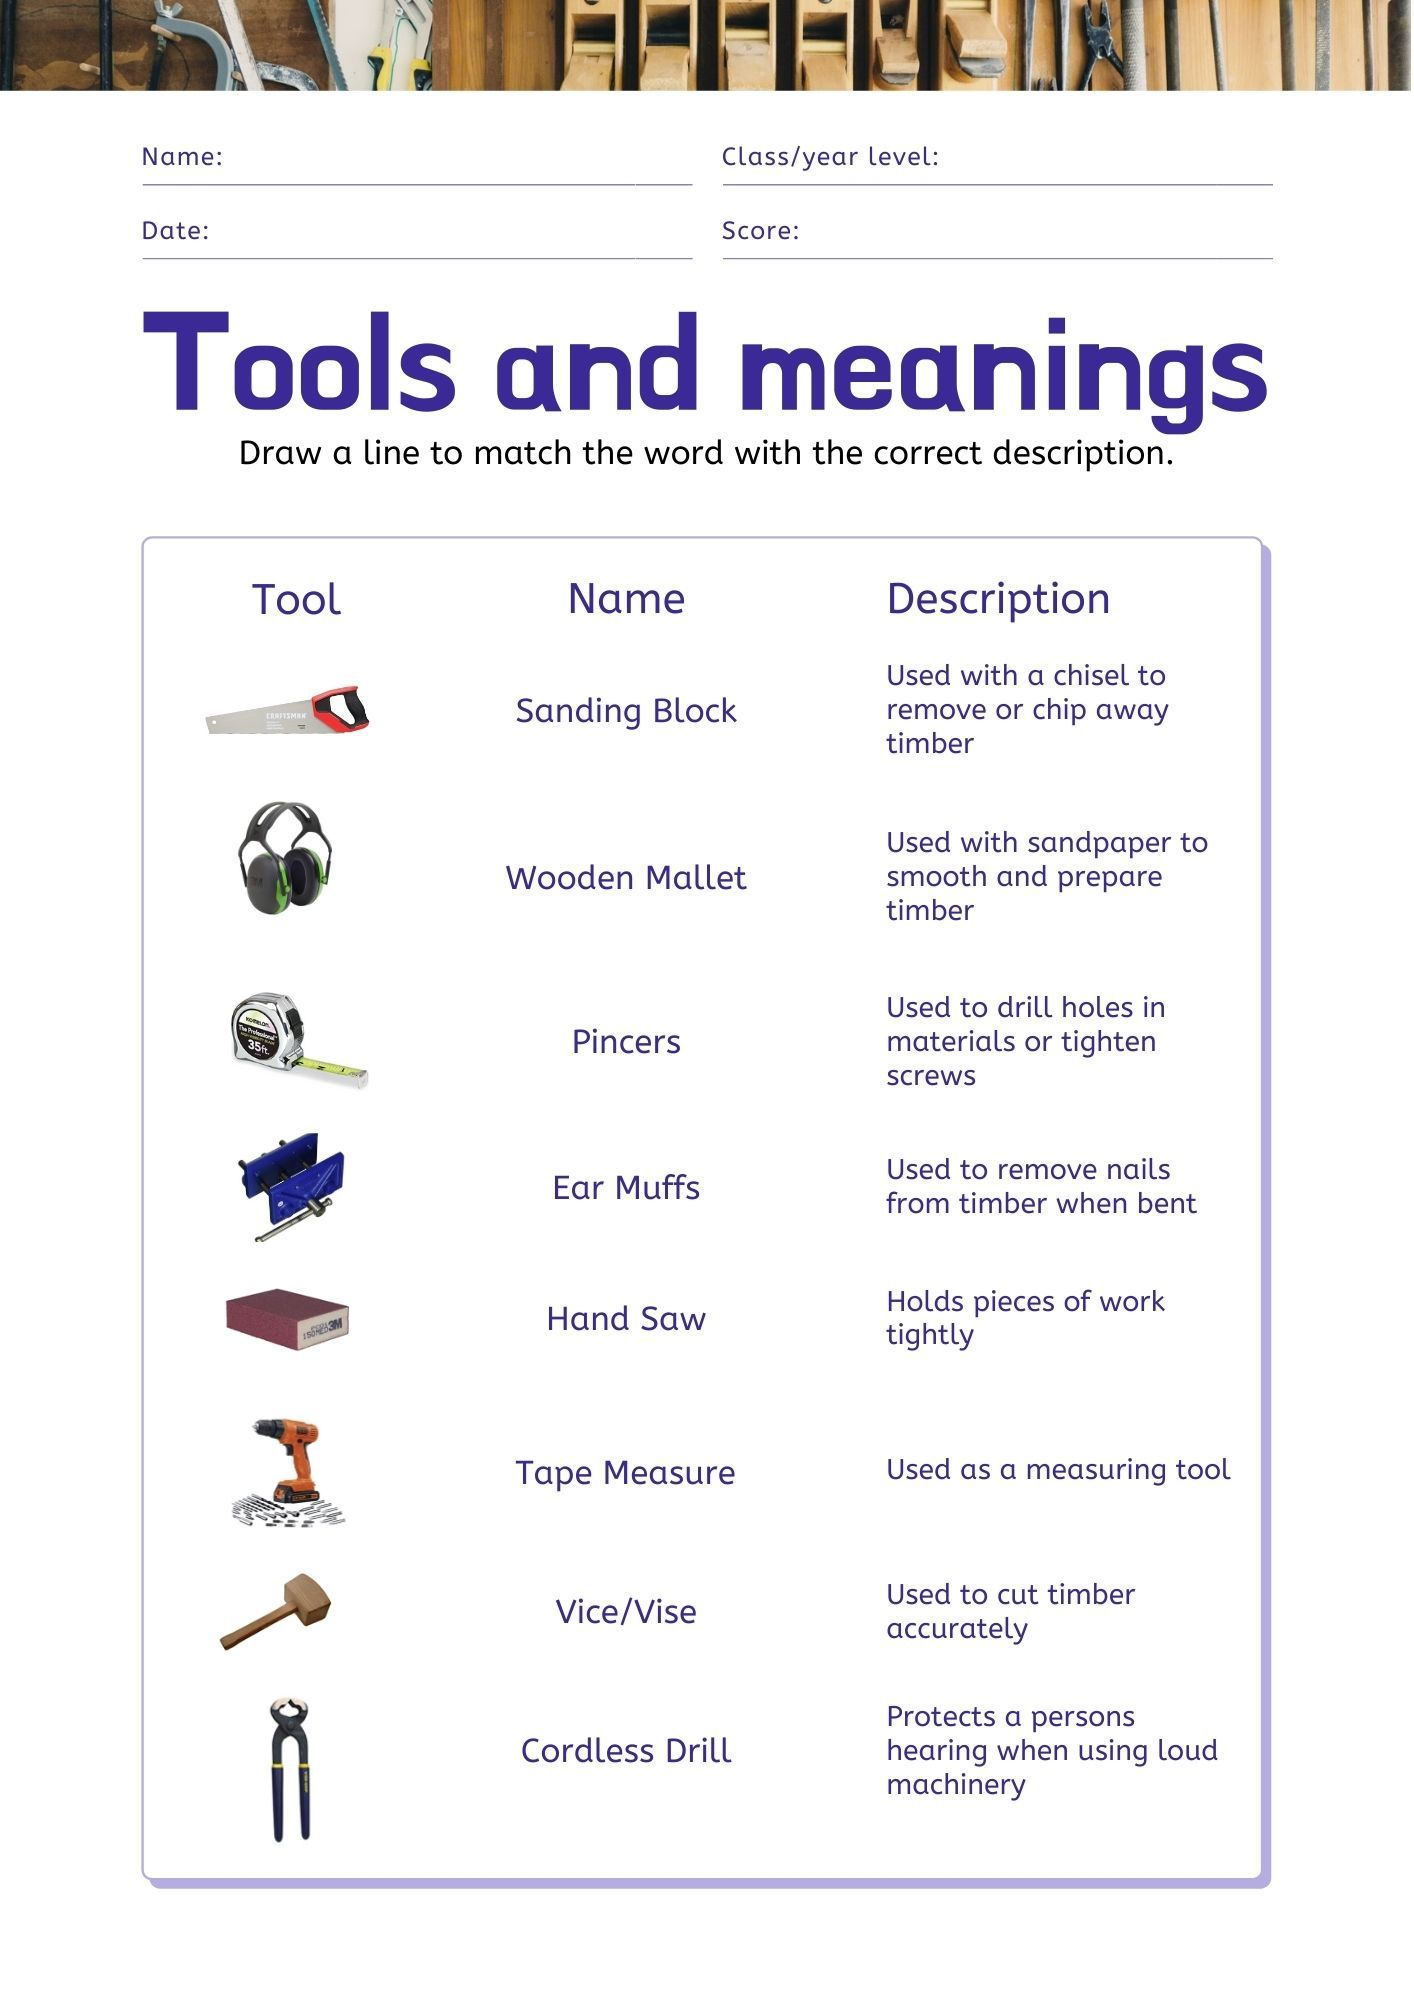 Woodworking Tools Worksheet In 2020 Woodworking Tools Stem Classroom Tools And Equipment